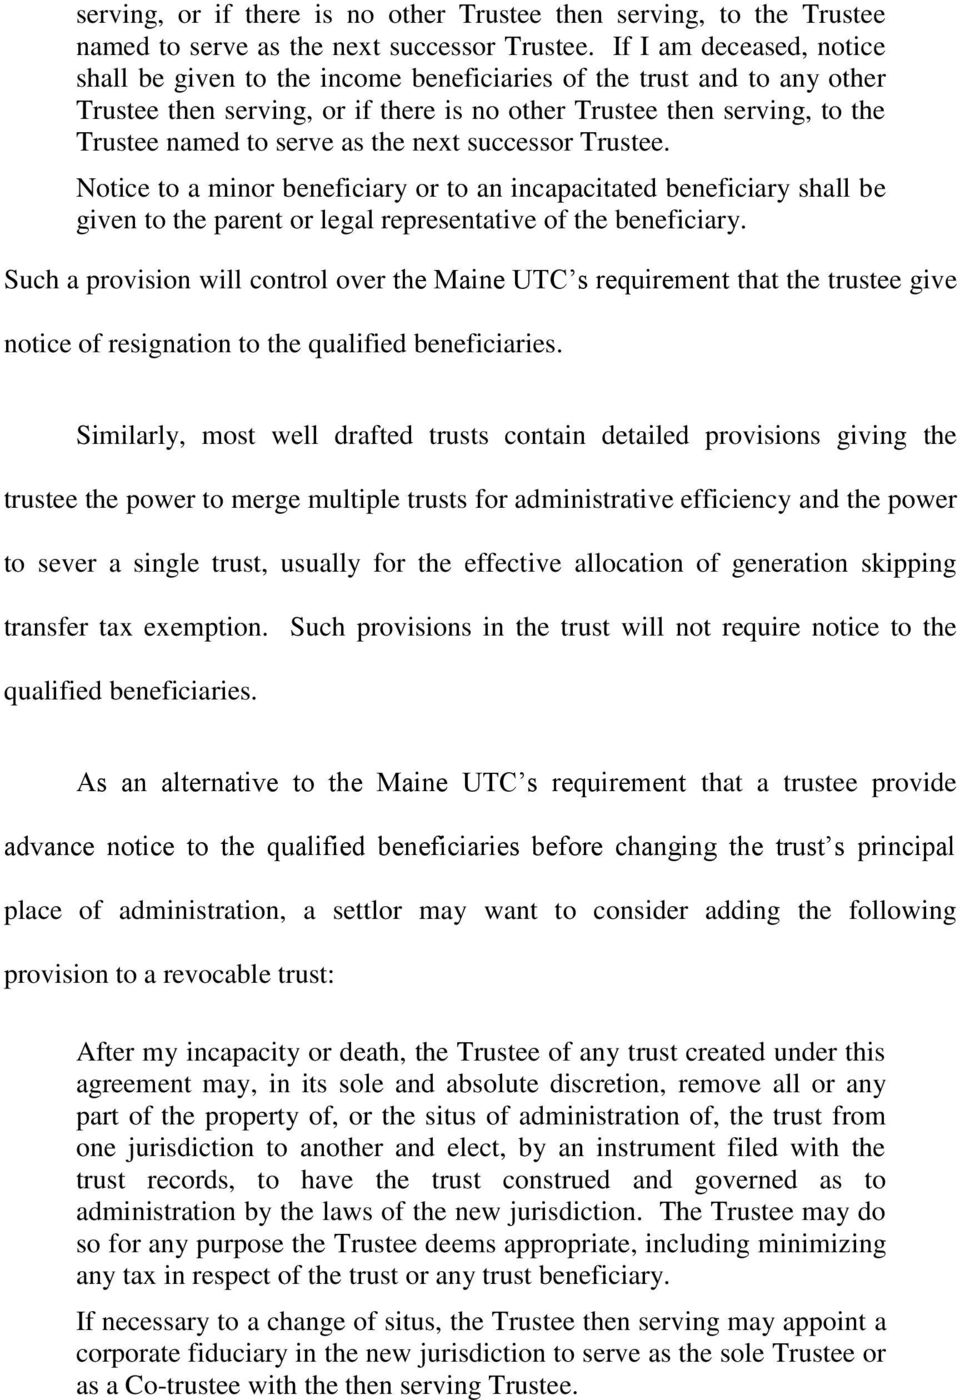 parent or legal representative of the beneficiary. Such a provision will control over the Maine UTC s requirement that the trustee give notice of resignation to the qualified beneficiaries.